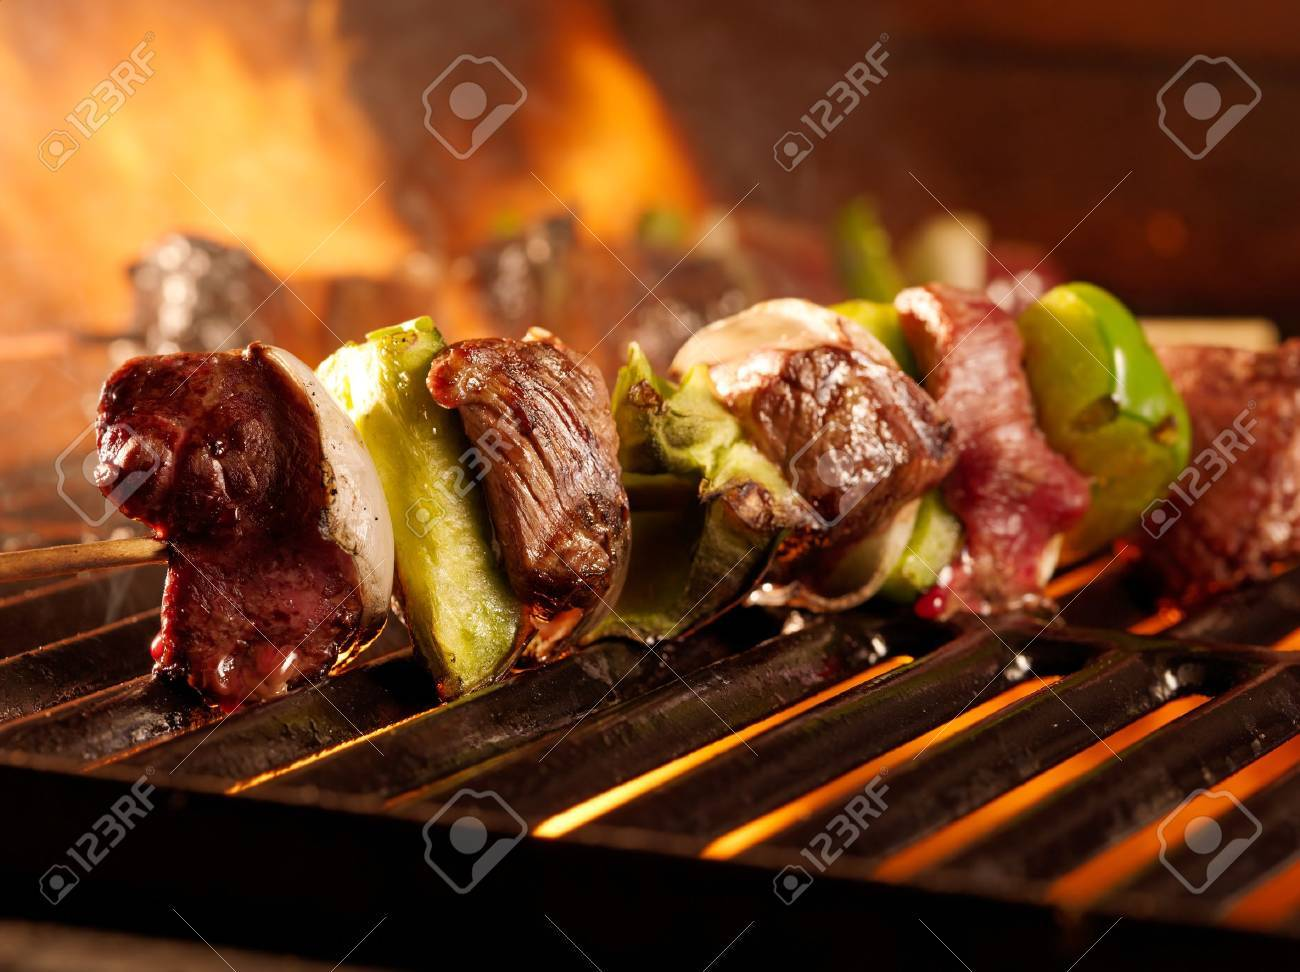 beef shish kababs on the grill Stock Photo - 14941032